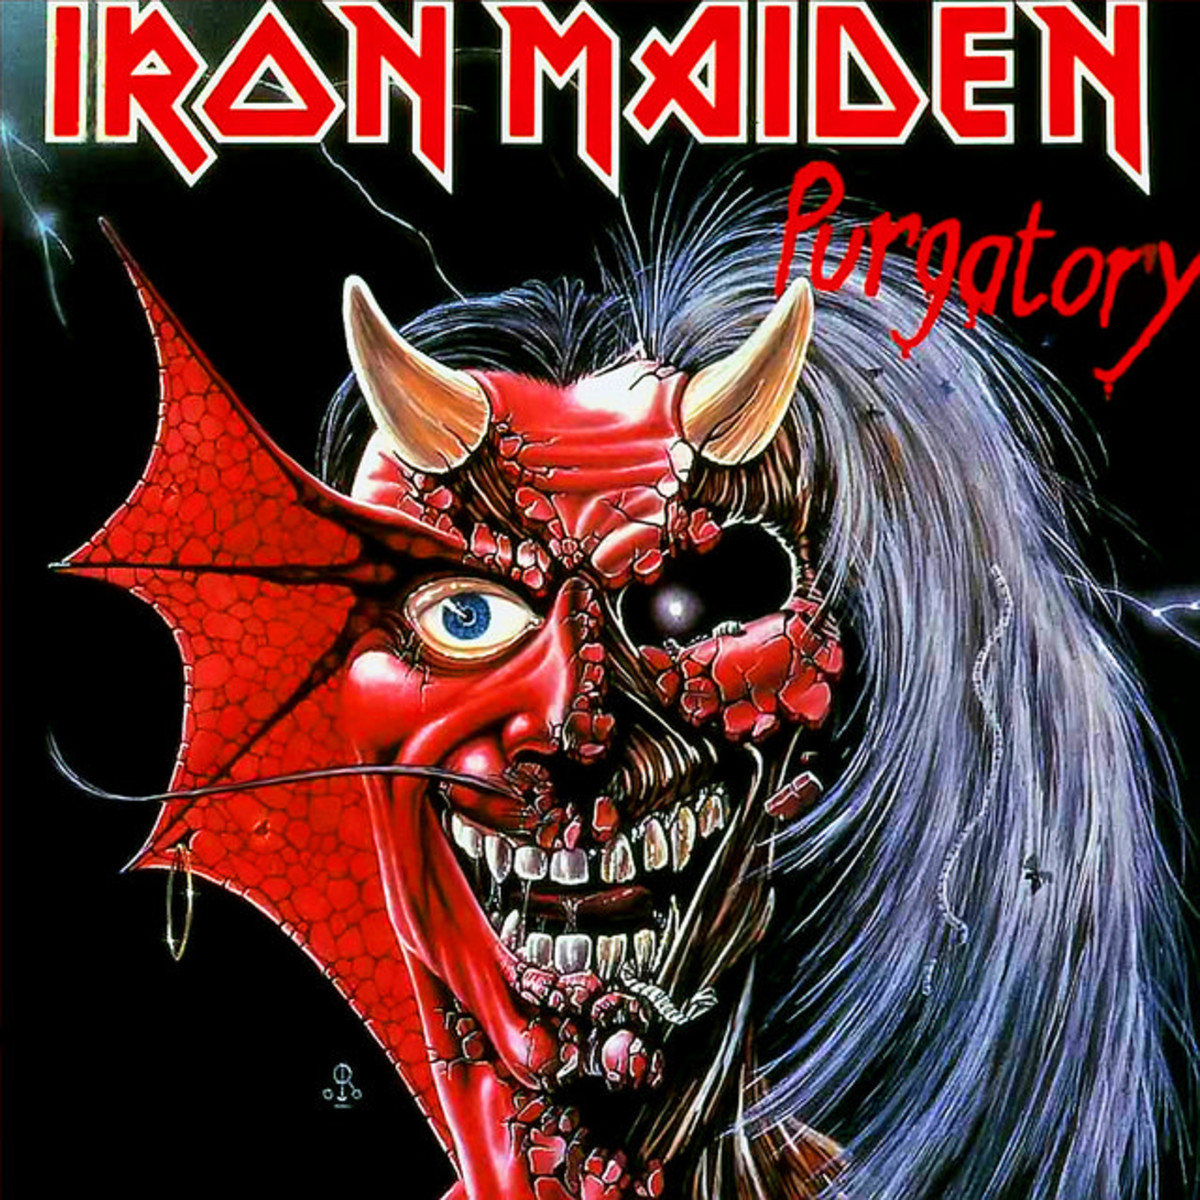 Iron Maiden Album Covers By Derek Riggs Spinditty